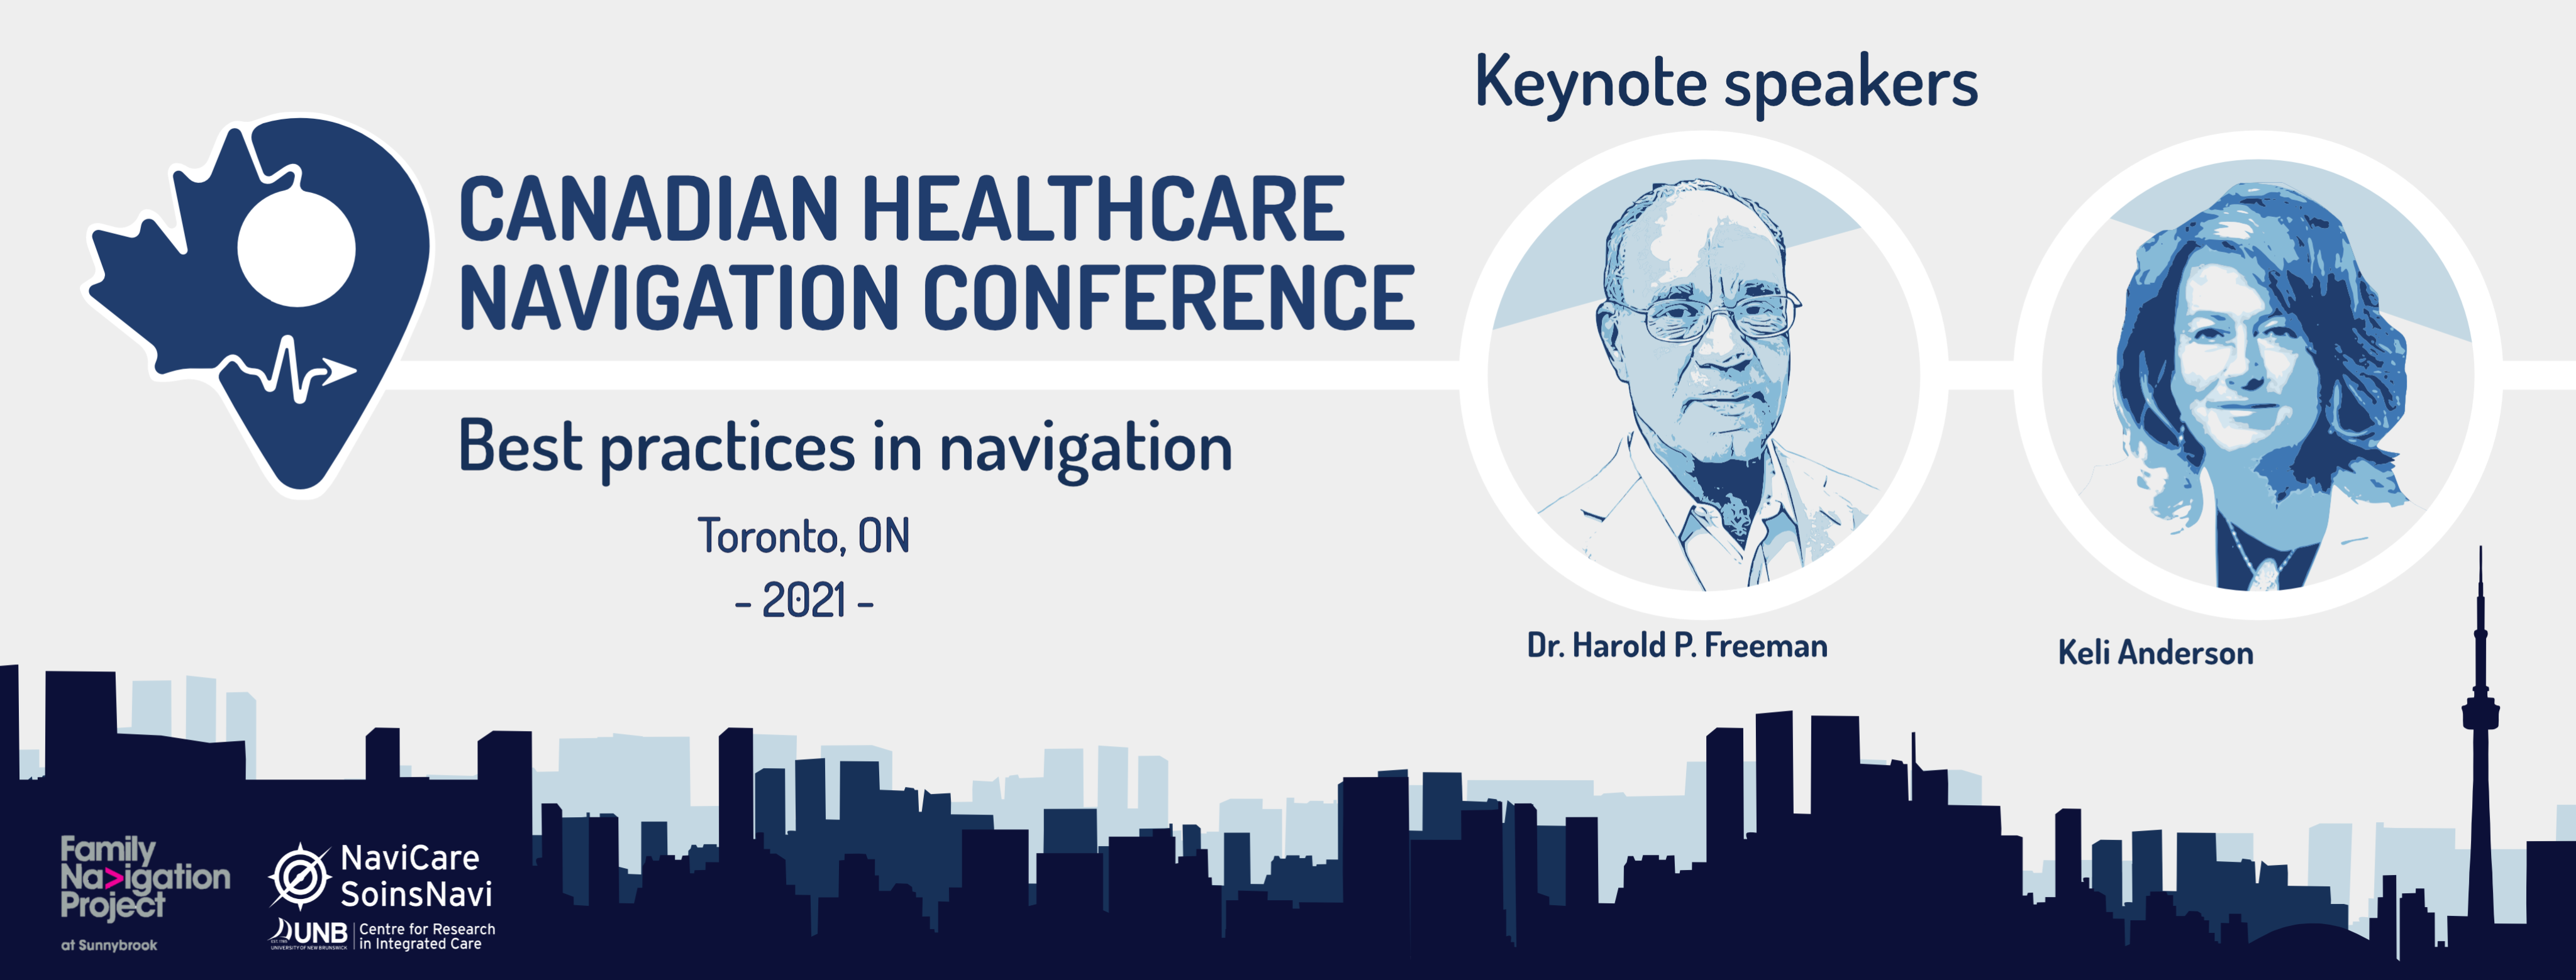 Canadian Healthcare Navigation Conference - Best Practices in Navigation - 2021